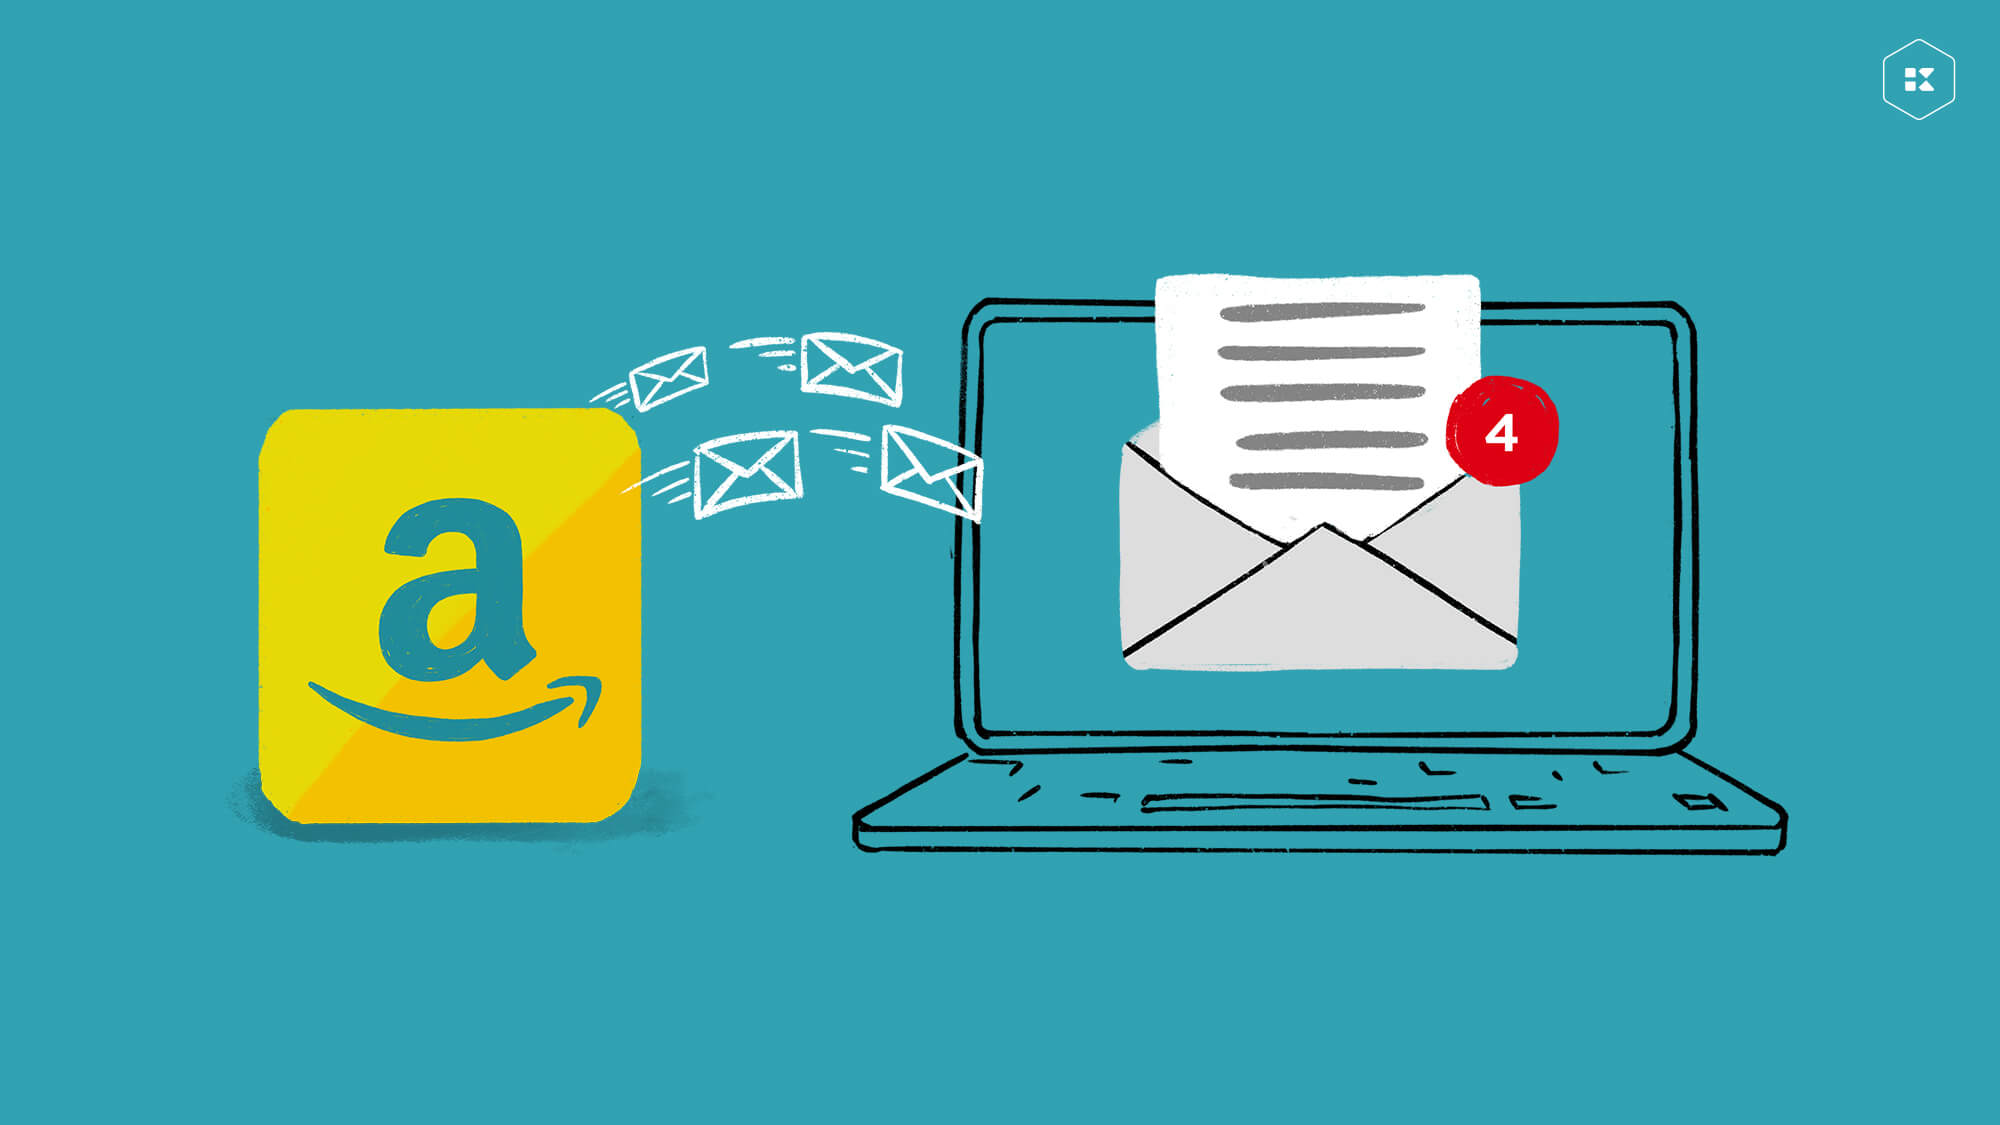 D2C email marketing via Amazon's Manage Your Customer Engagement Tool